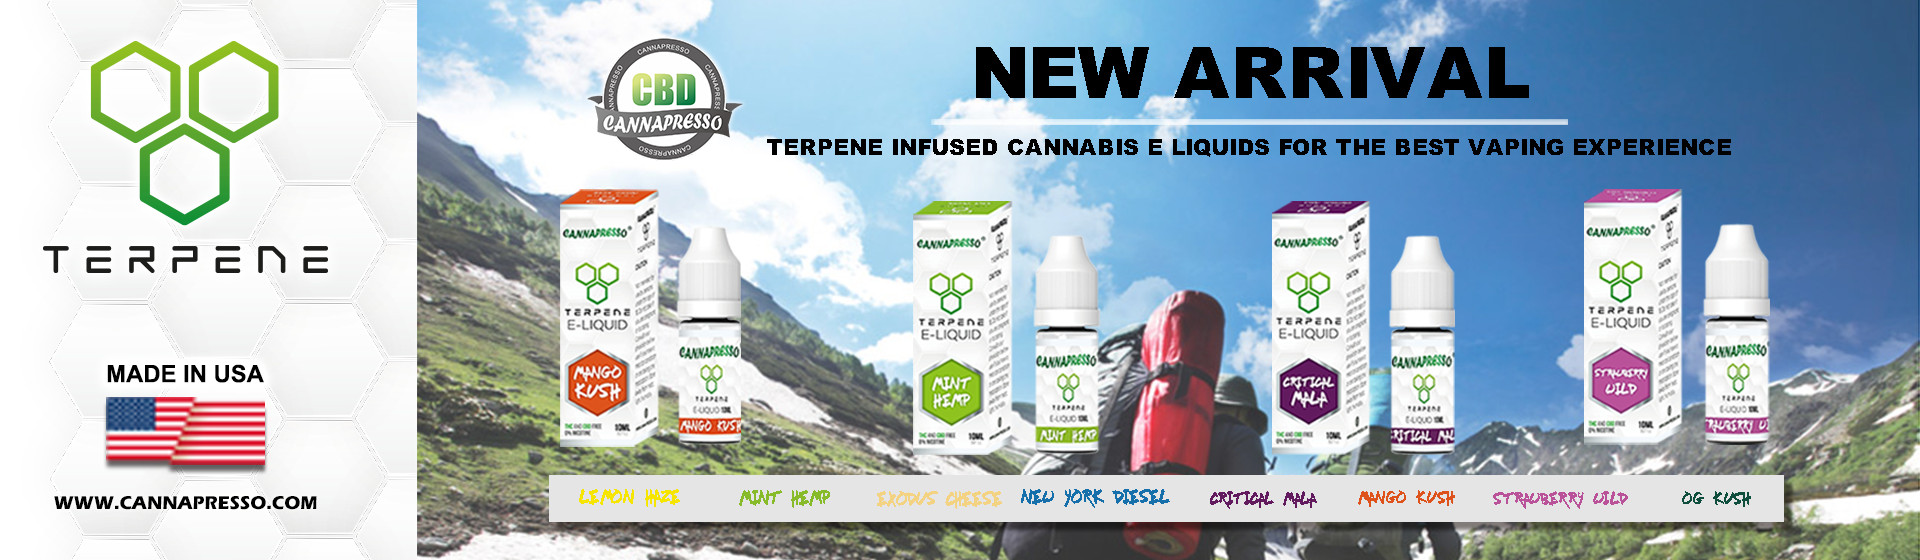 Cannapresso 0mg CBD terpene eliquid